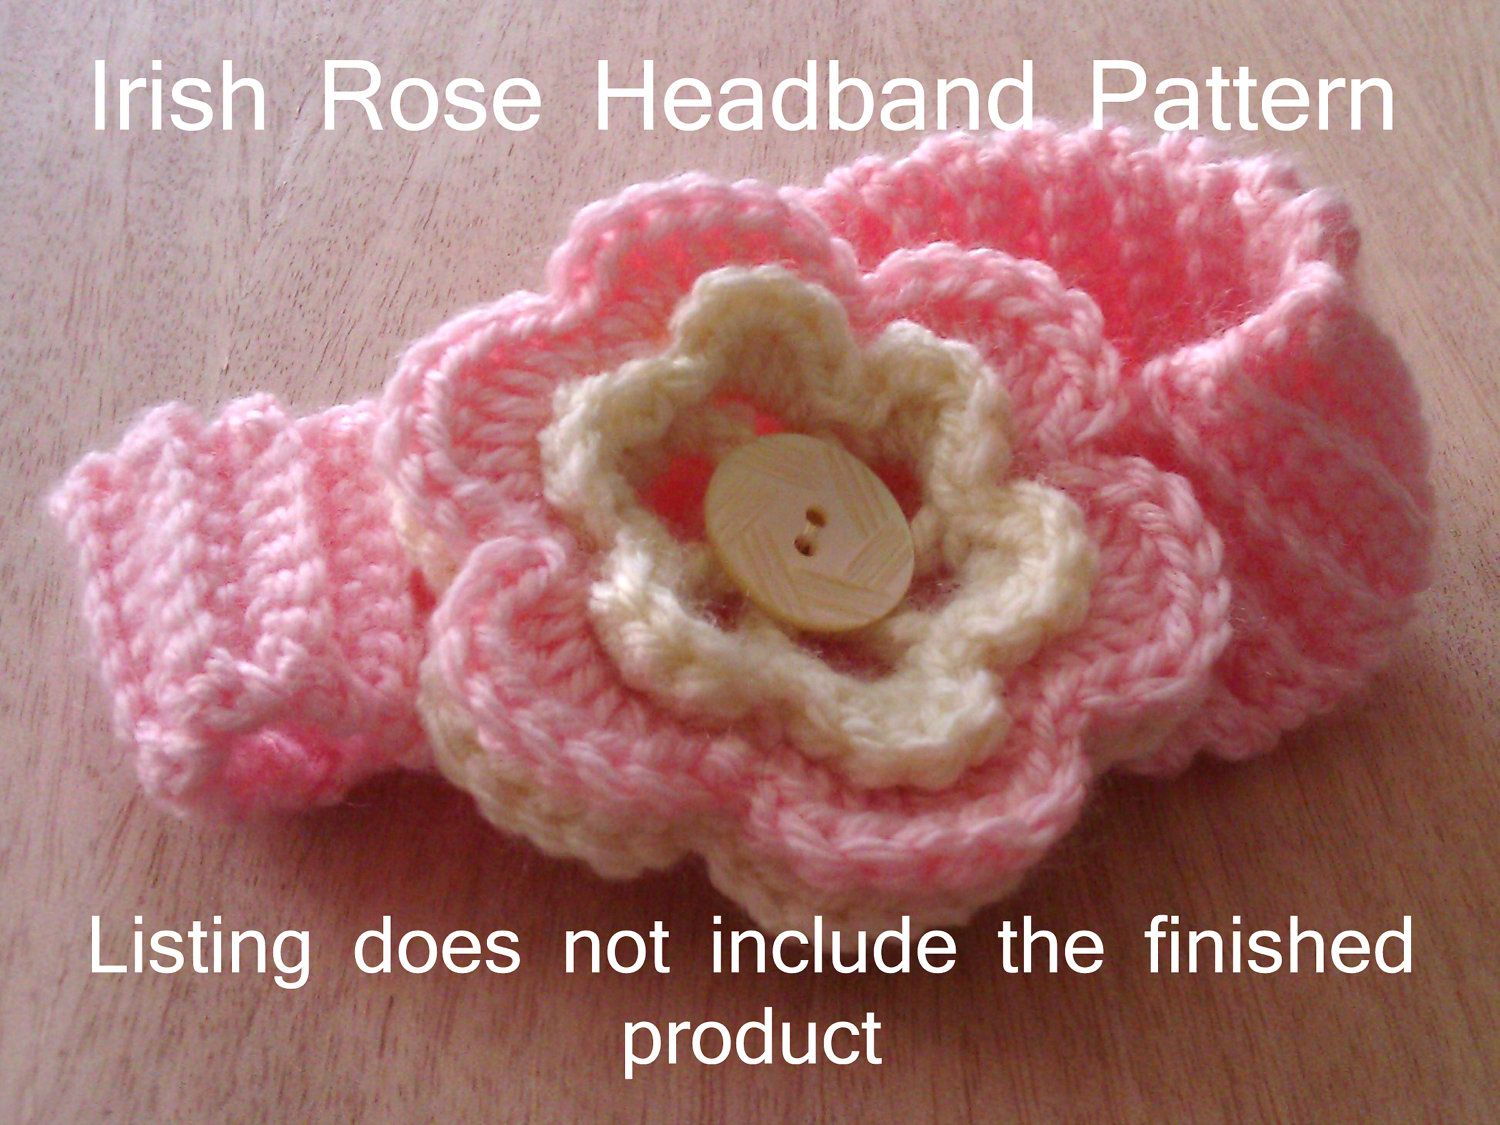 Free baby crochet patterns baby girl irish rose headband crochet free baby crochet patterns baby girl irish rose headband crochet pattern by cncole87 on etsy bankloansurffo Image collections